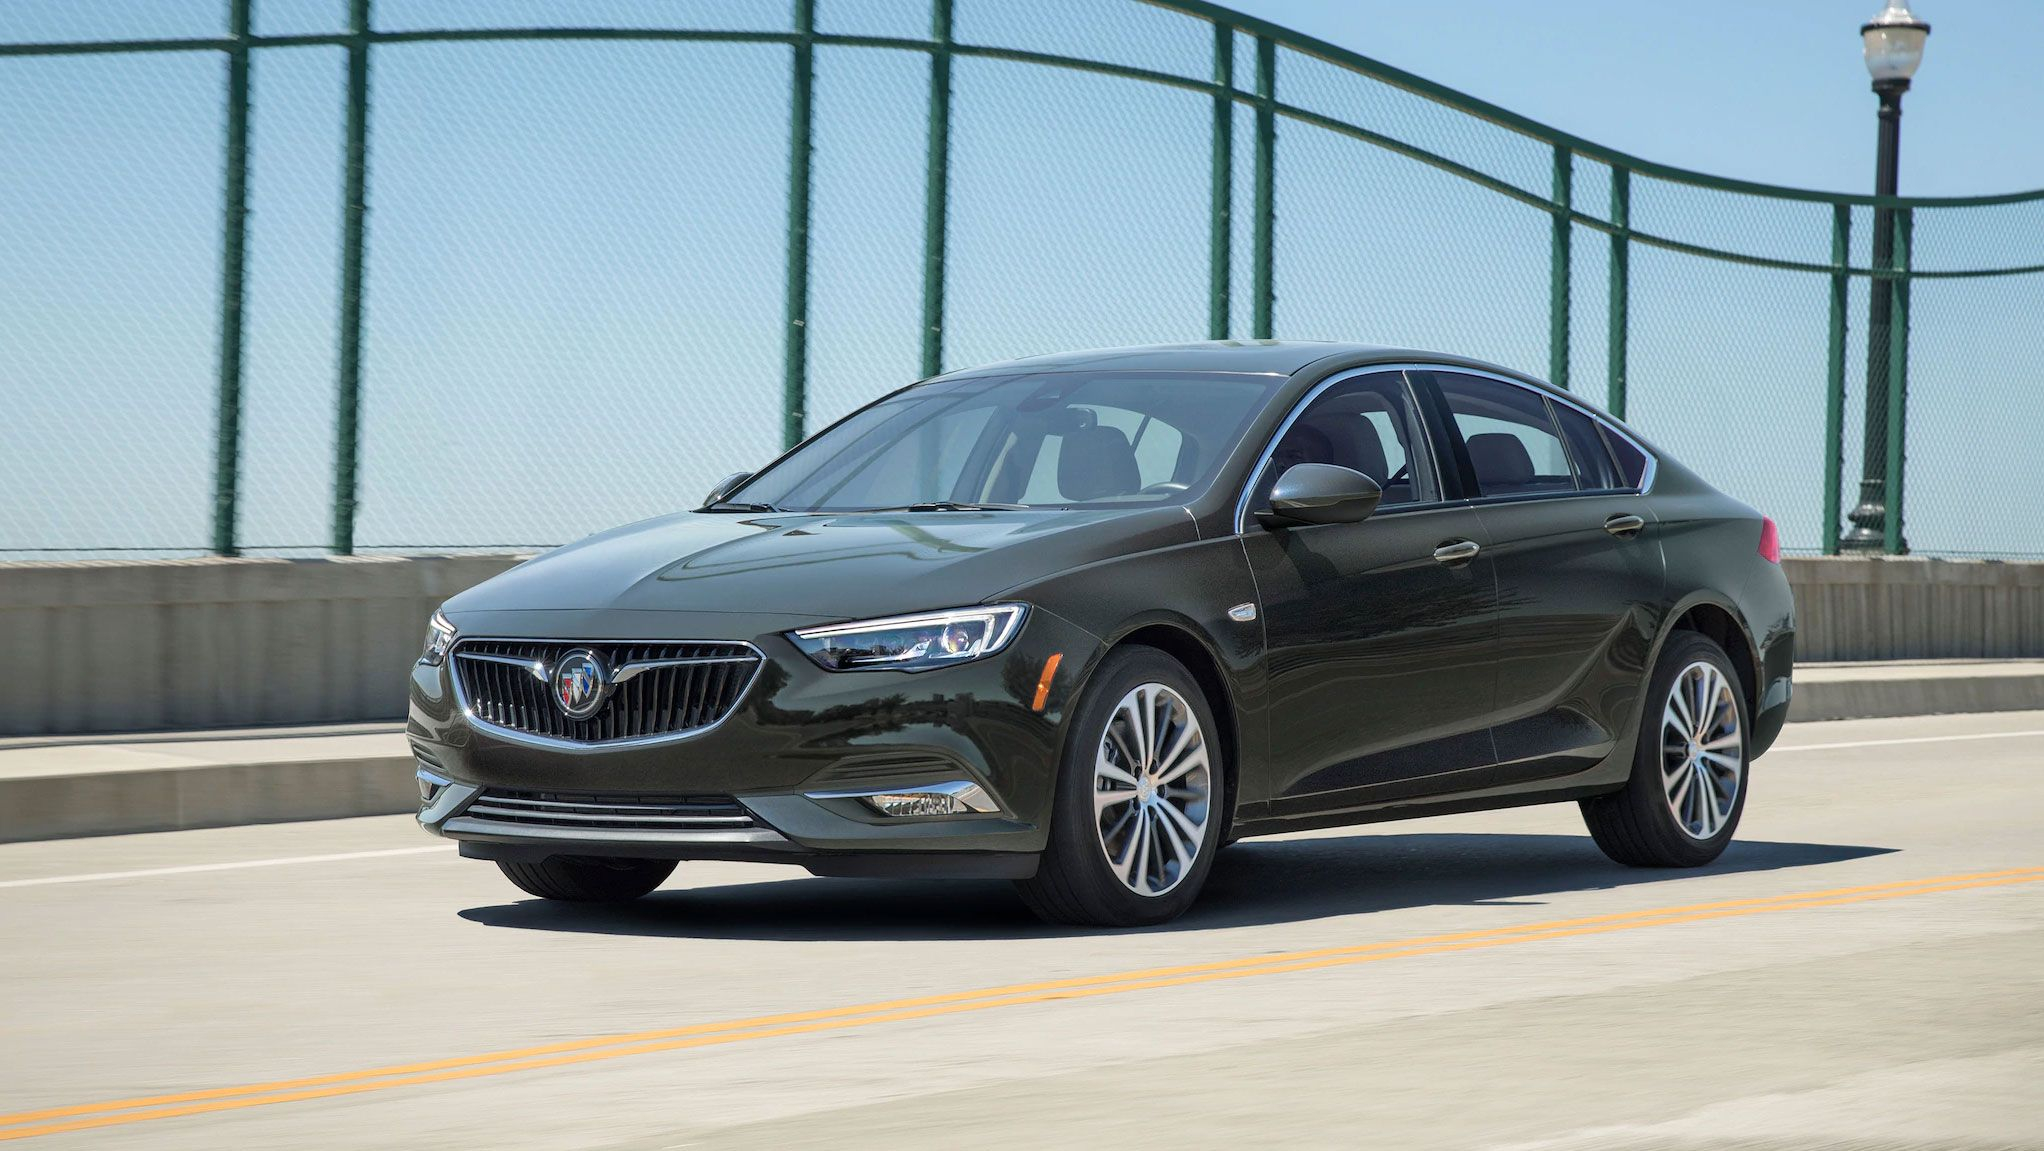 2020 Buick Regal Sportback Review, Pricing, And Specs New 2021 Buick Regal Mpg, Engine, Owners Manual